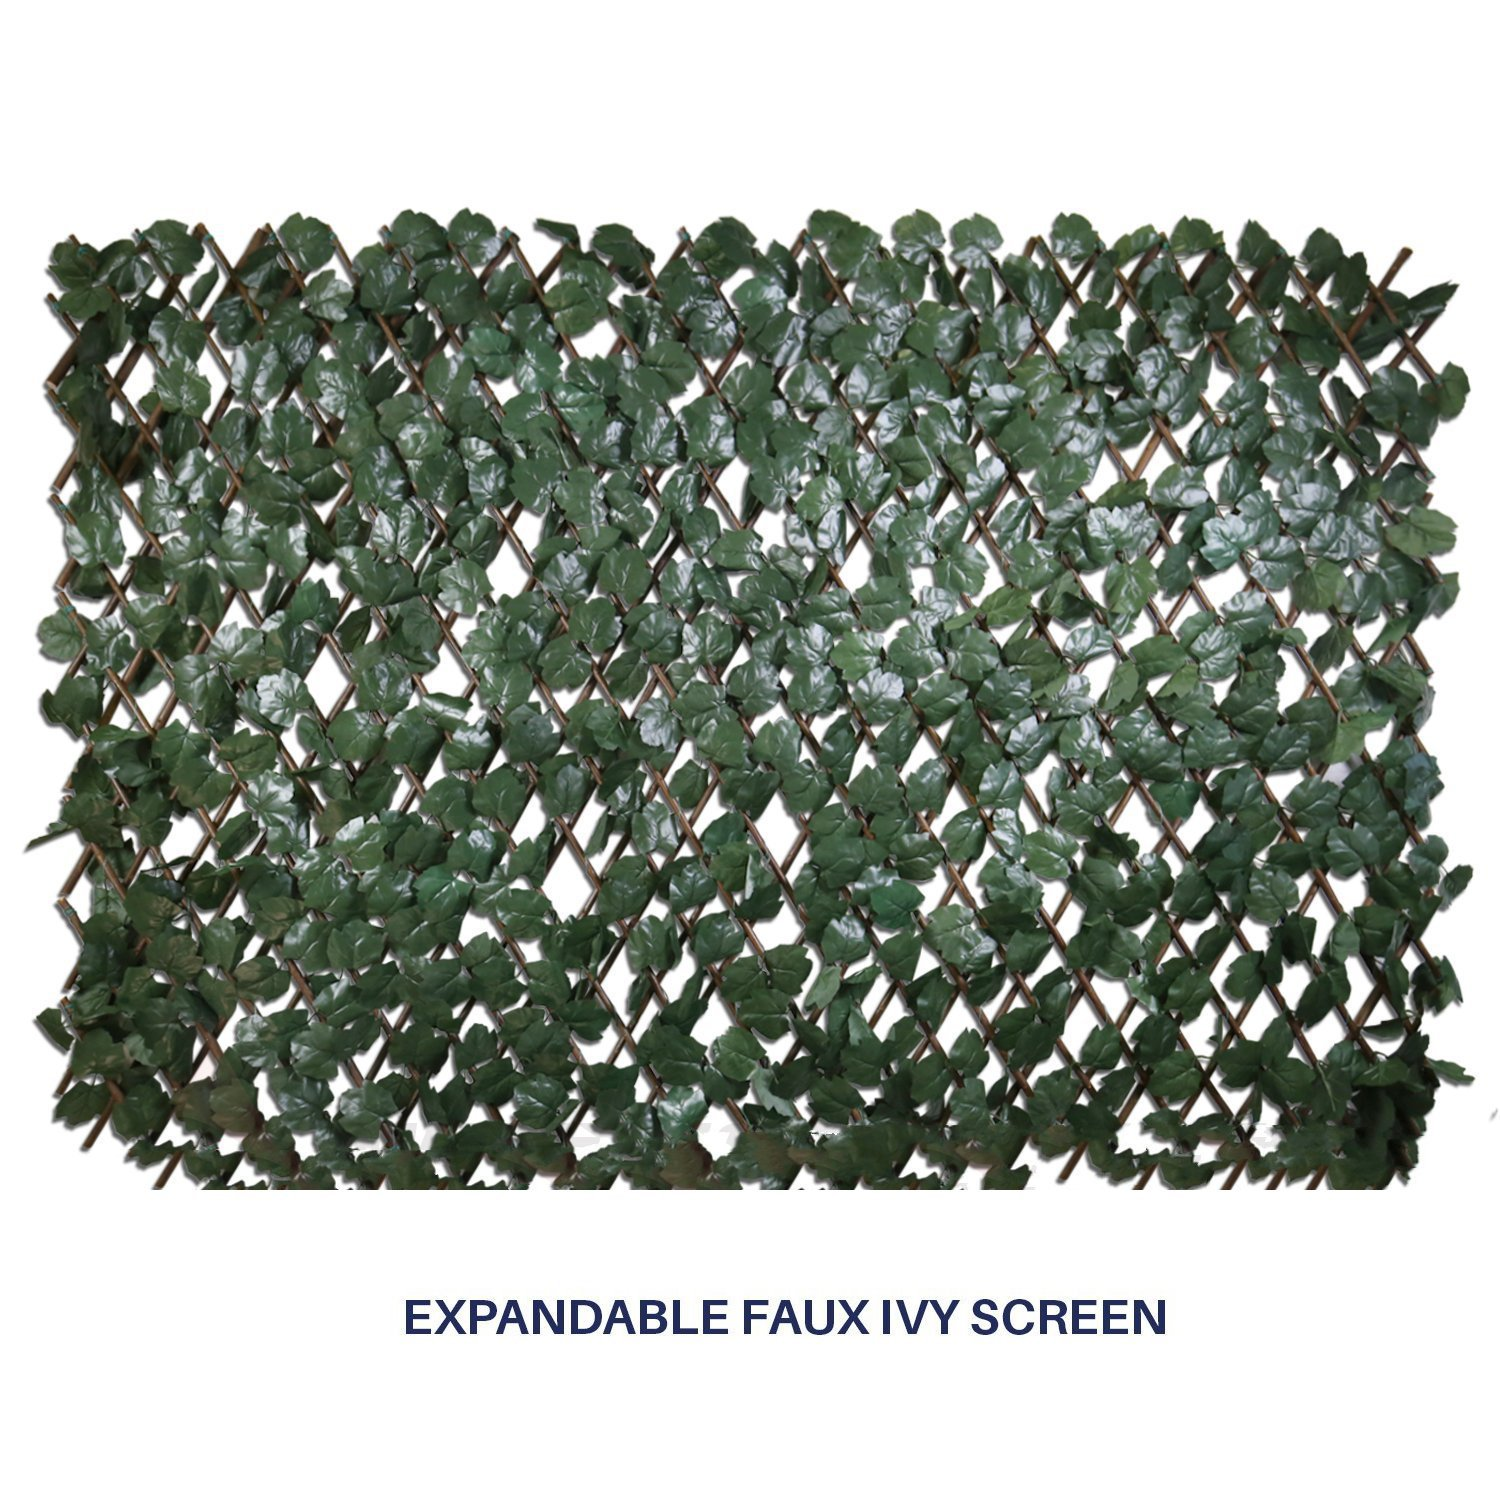 Shade Screen Artificial Leaf Faux Ivy Expandable/Stretchable Privacy Fence Screen (Single Sided Leaves) Outdoor/Indoor Backdrop Garden Backyard Home Decorations